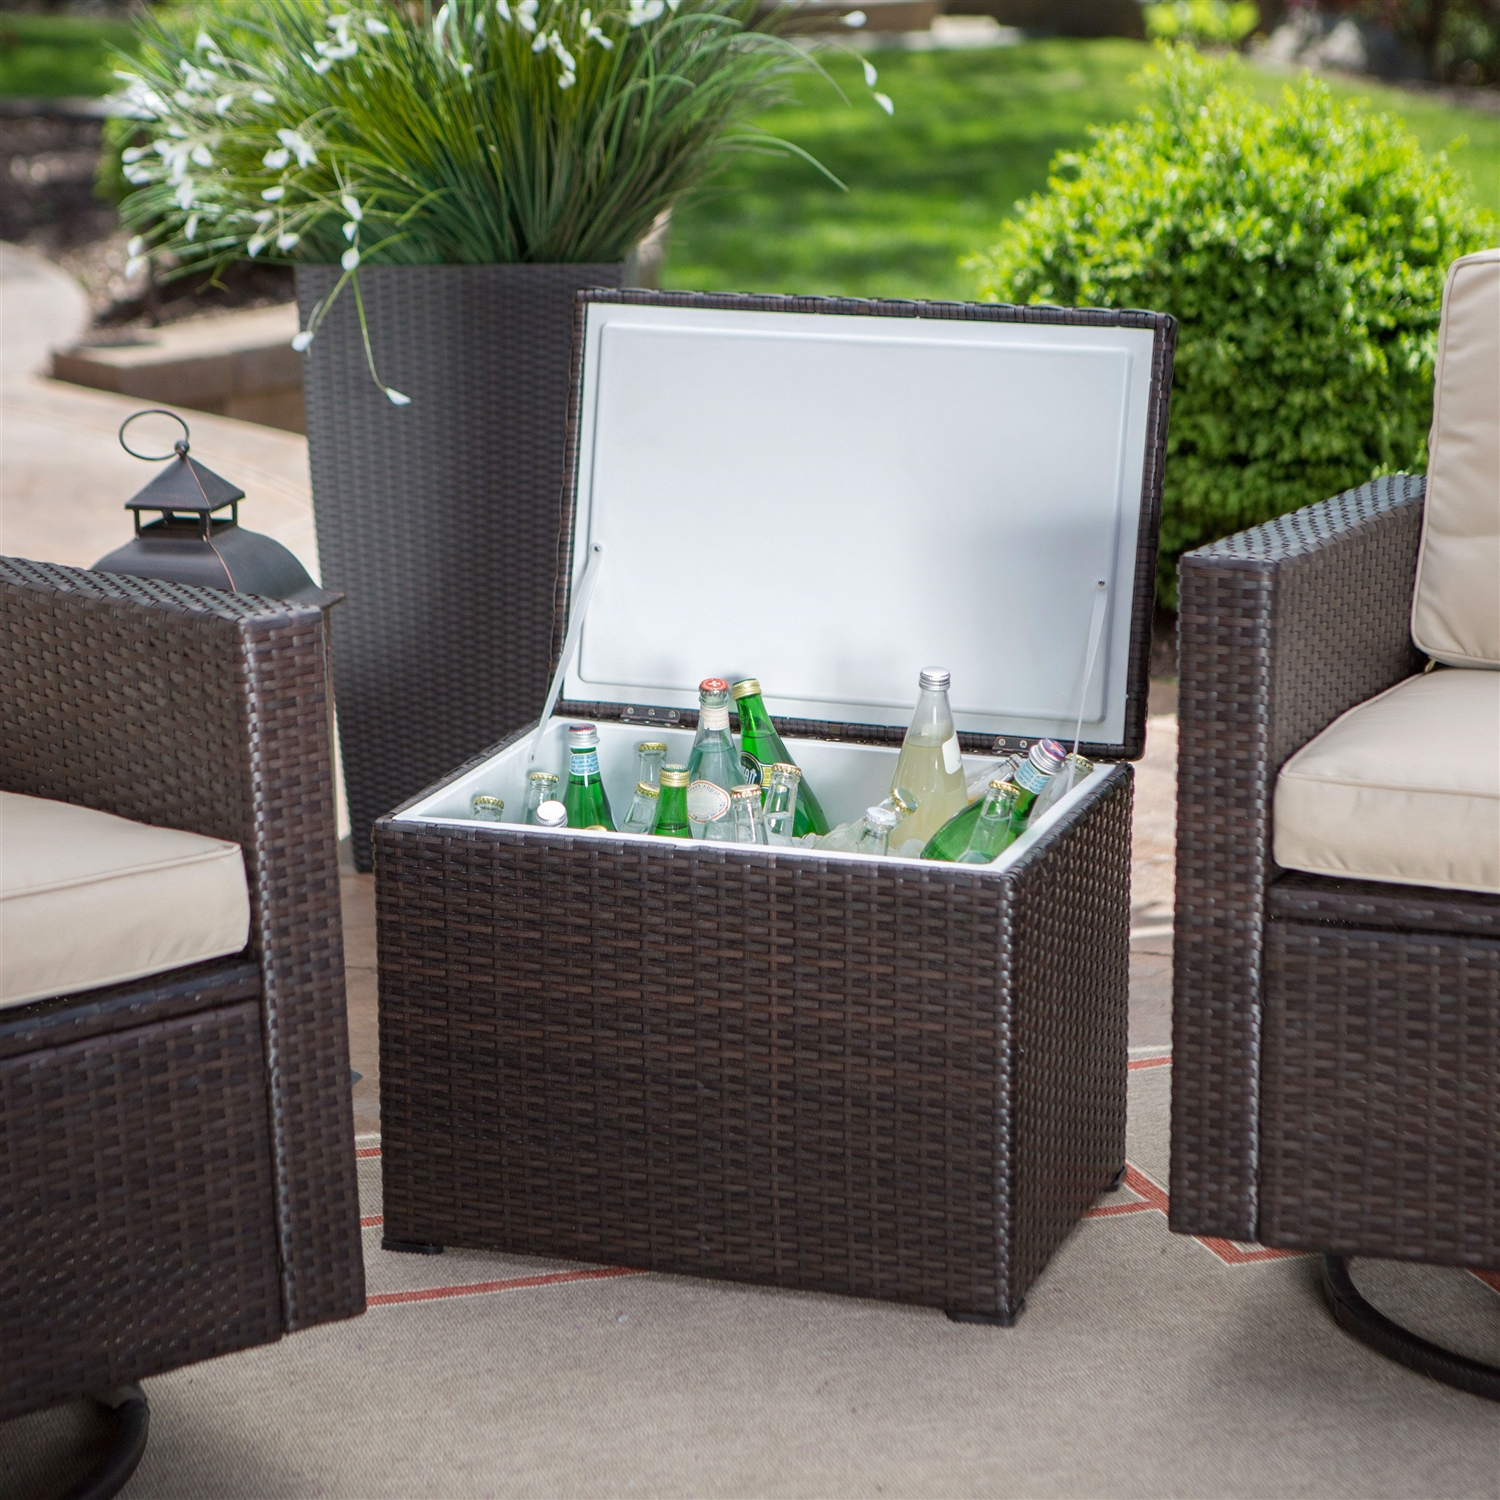 outdoor wicker resin piece patio furniture set with chairs and side table storage retail seattle lighting dog grooming ashley nesting tables west elm high affordable living room